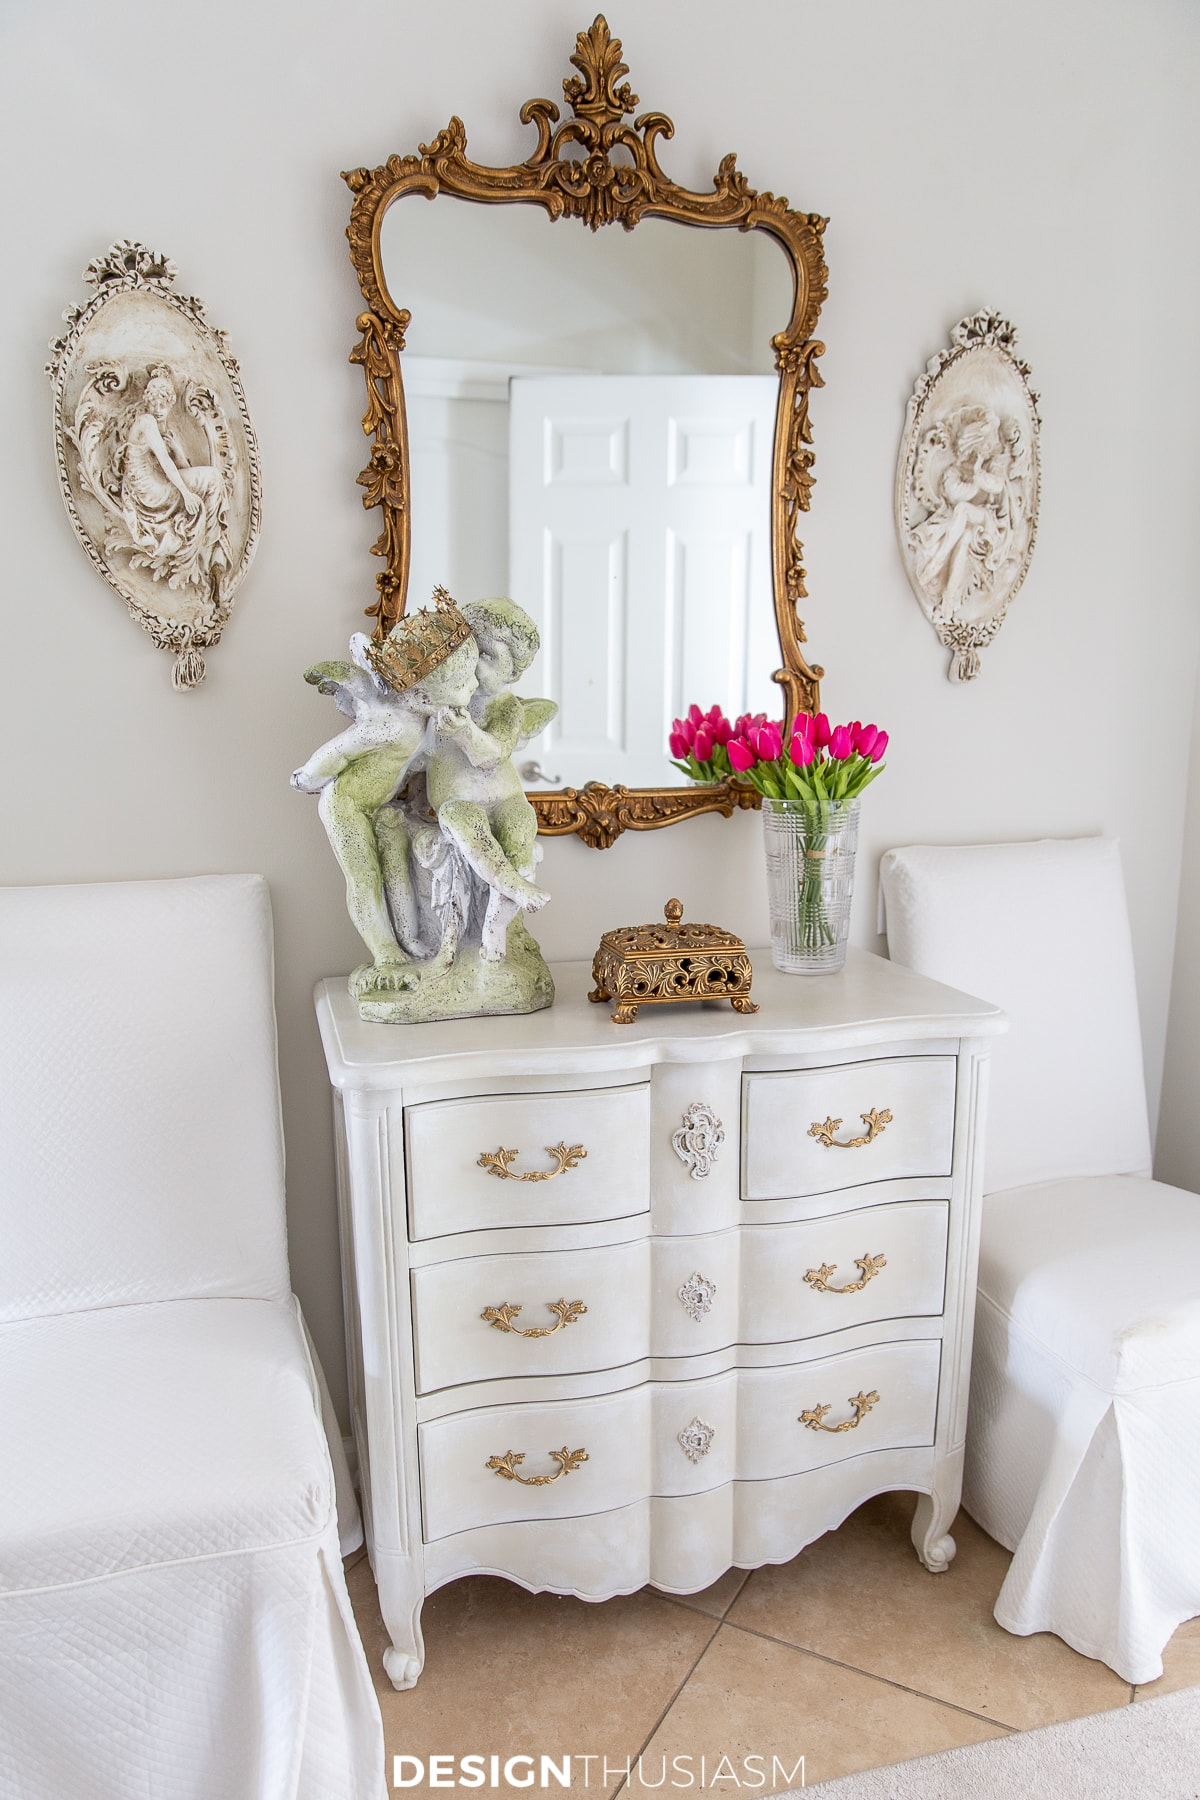 Chalk Painted Furniture: Upgrading a Painted Chest of Drawers